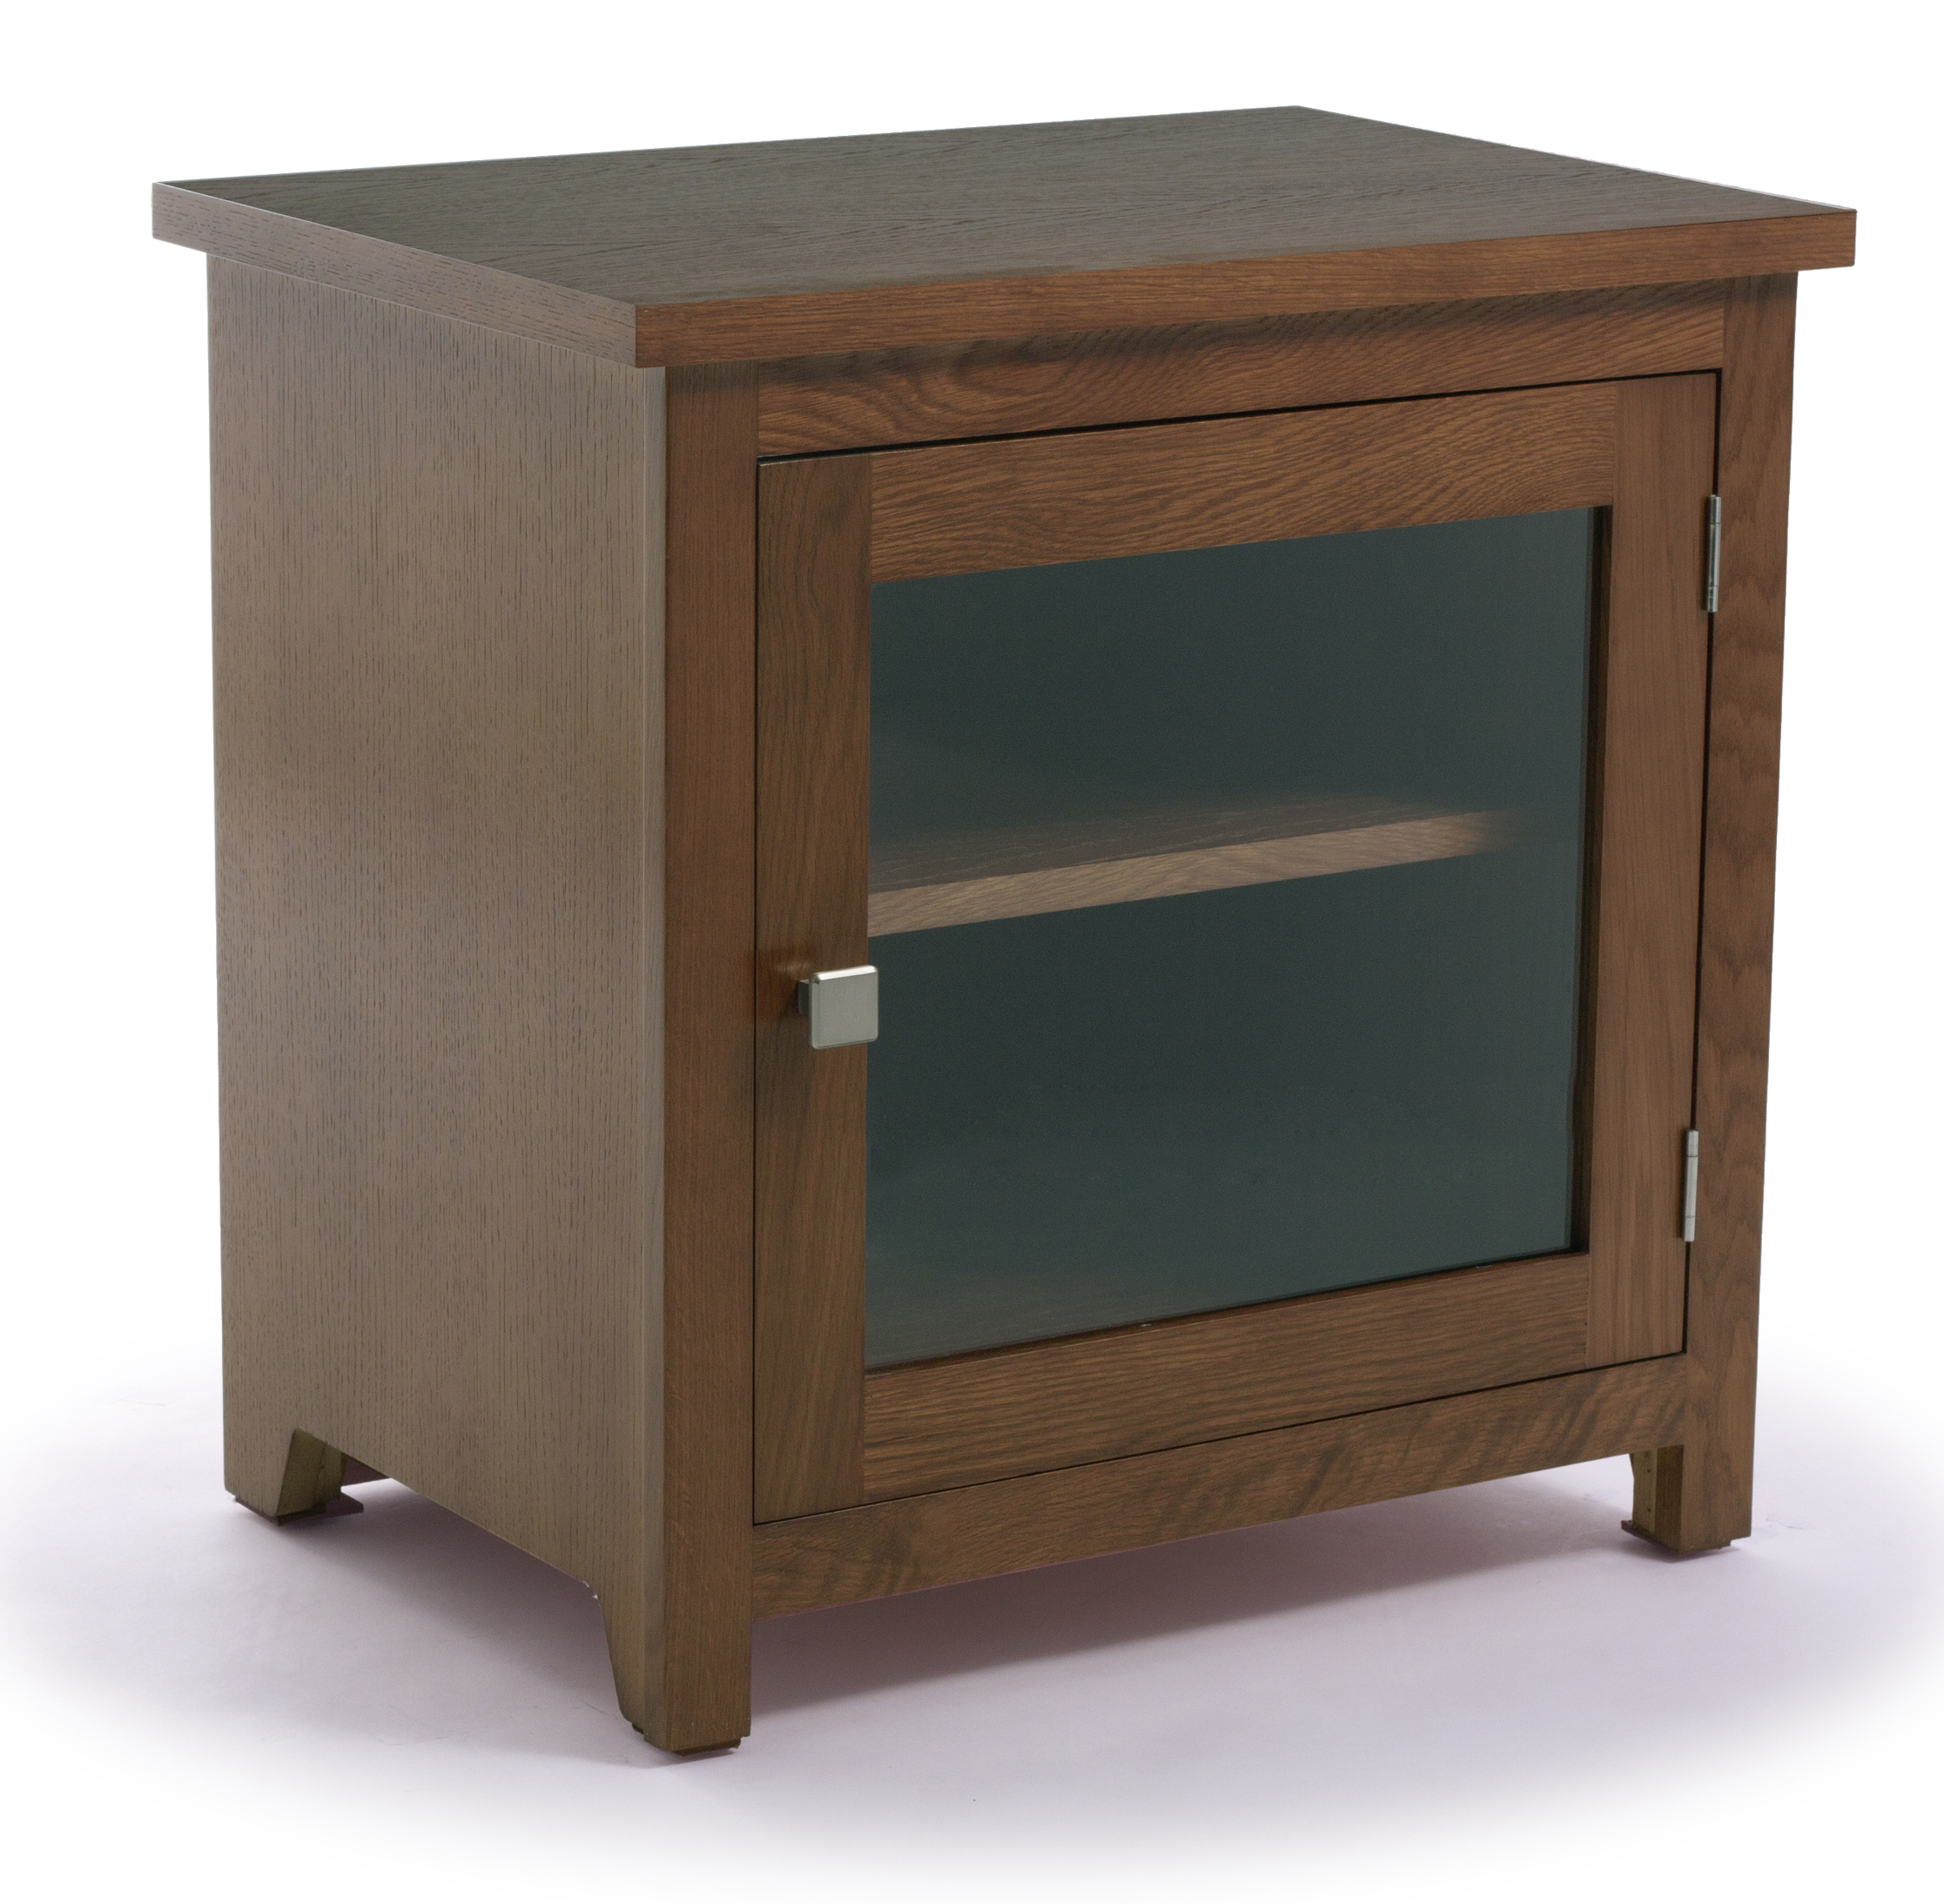 Modern classic hi fi unit cfs contract furniture solutions for Modern and classic furniture